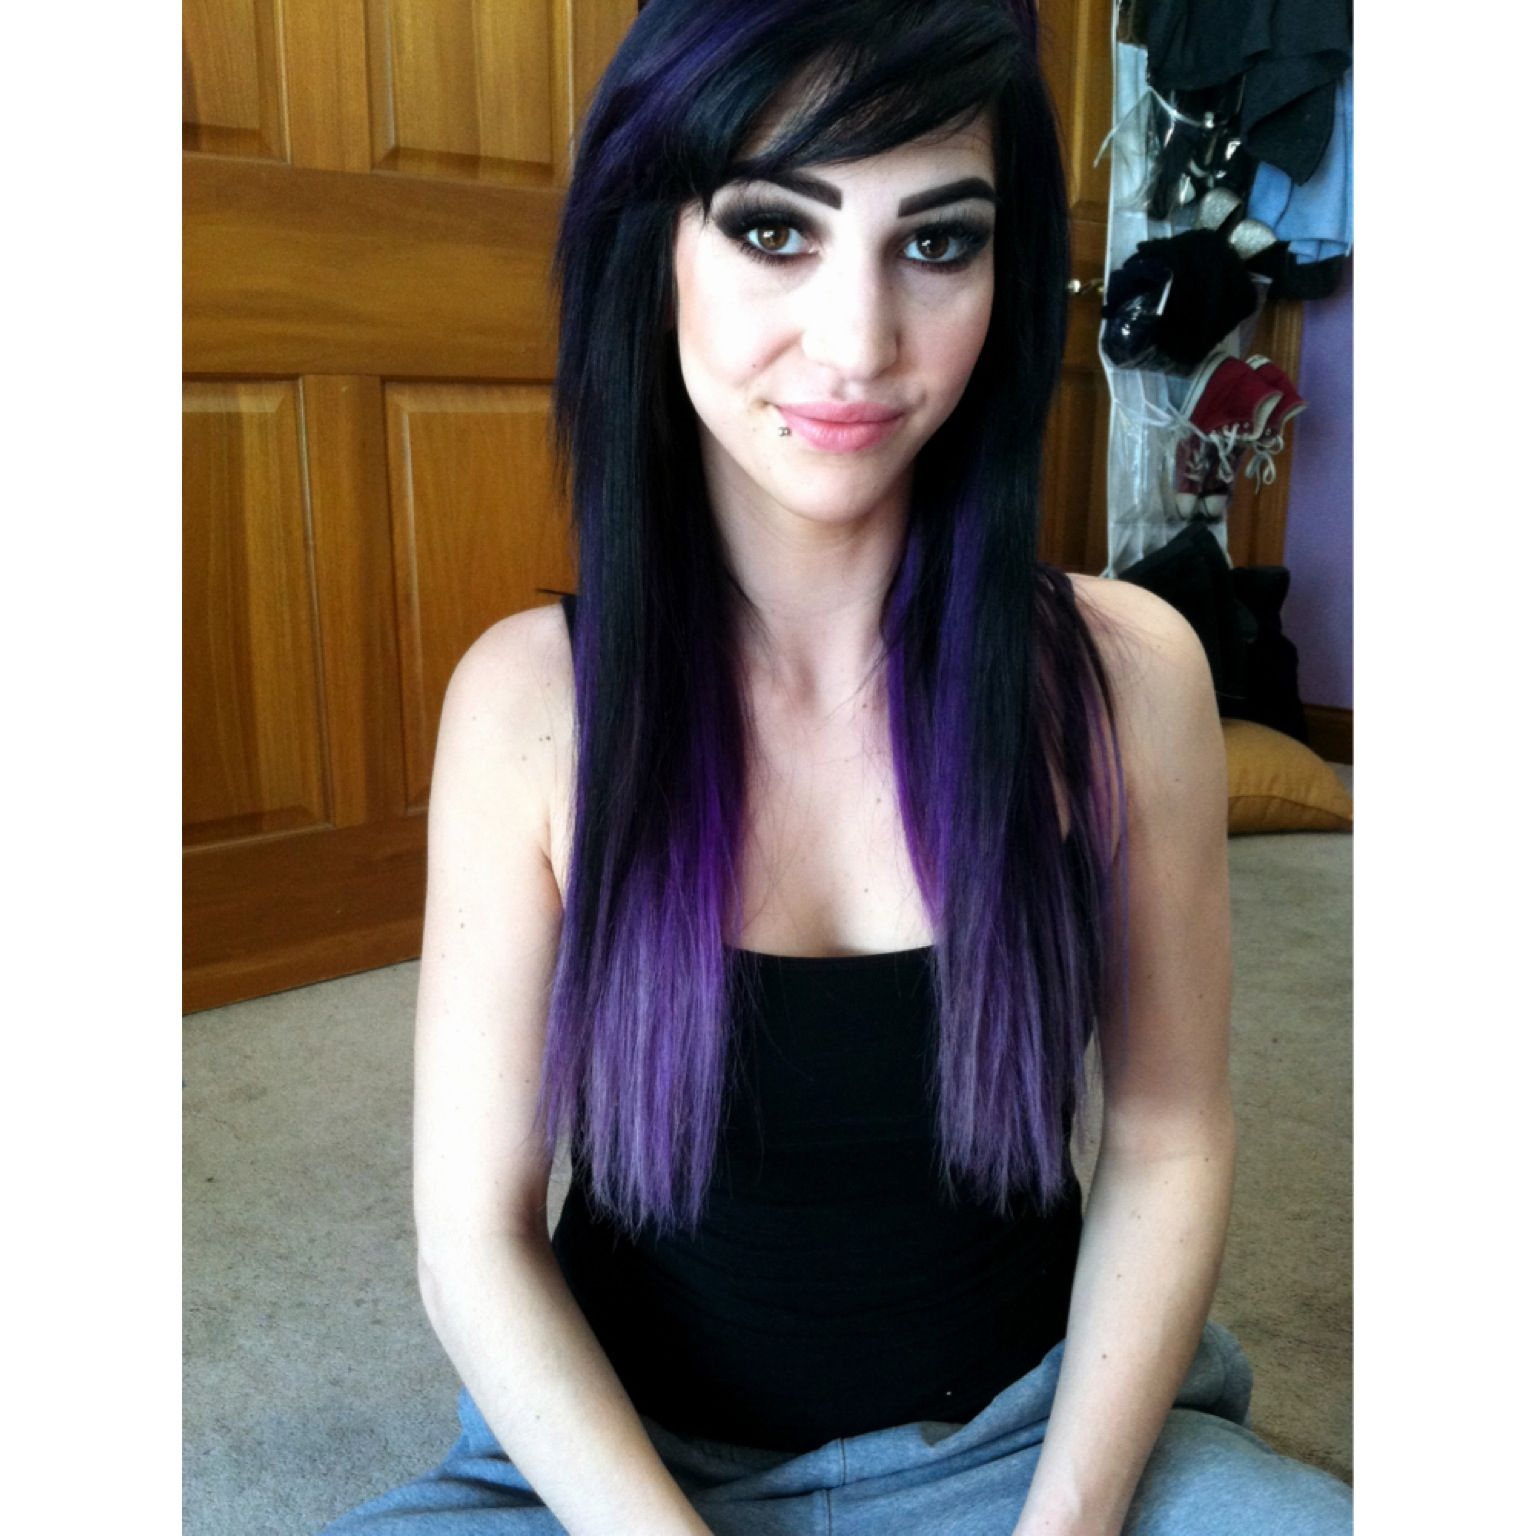 black to purple to lavender ombr bright hair color using pravana vivids in purple and 09v - Coloration Hnn